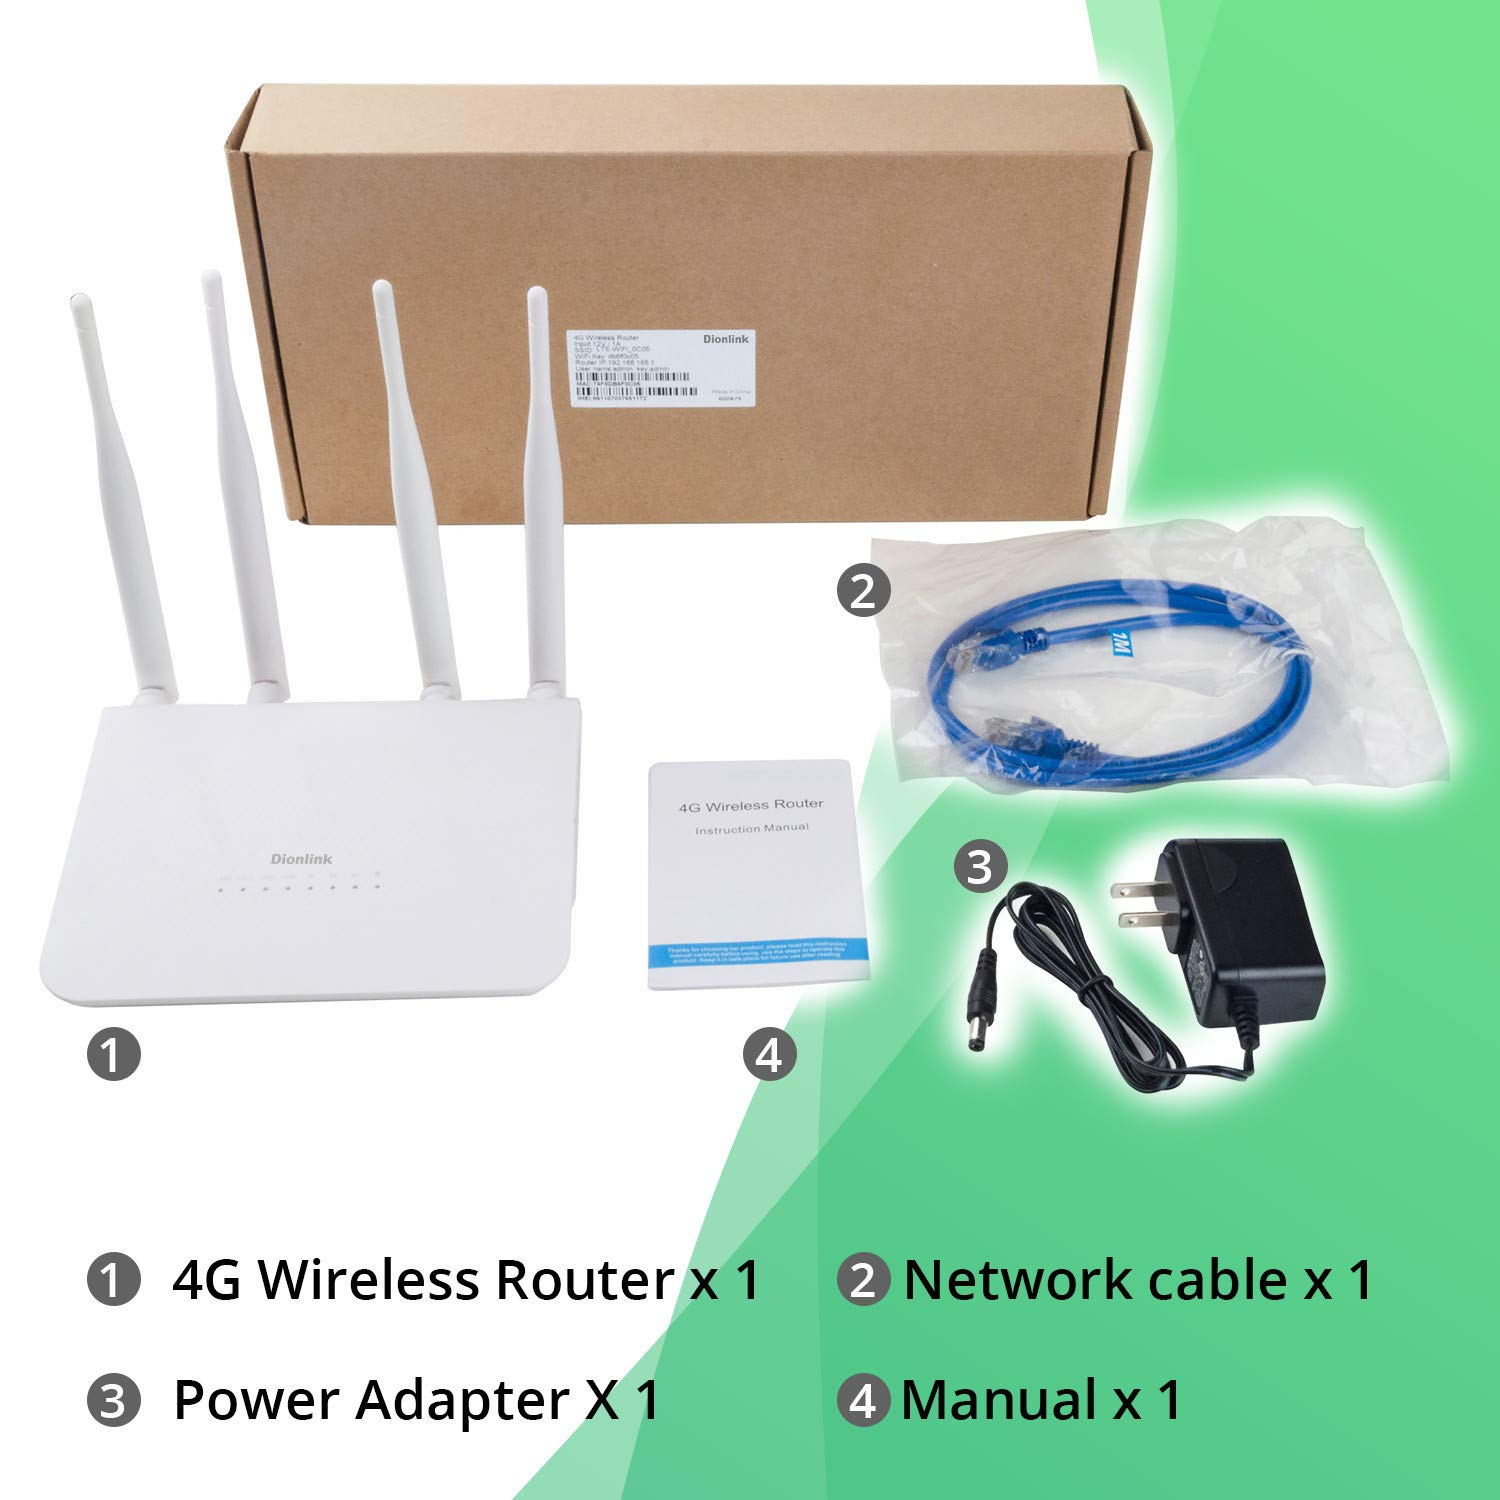 Amazon.com: Dionlink LT15 - Antena móvil WiFi Router 3G 4G ...